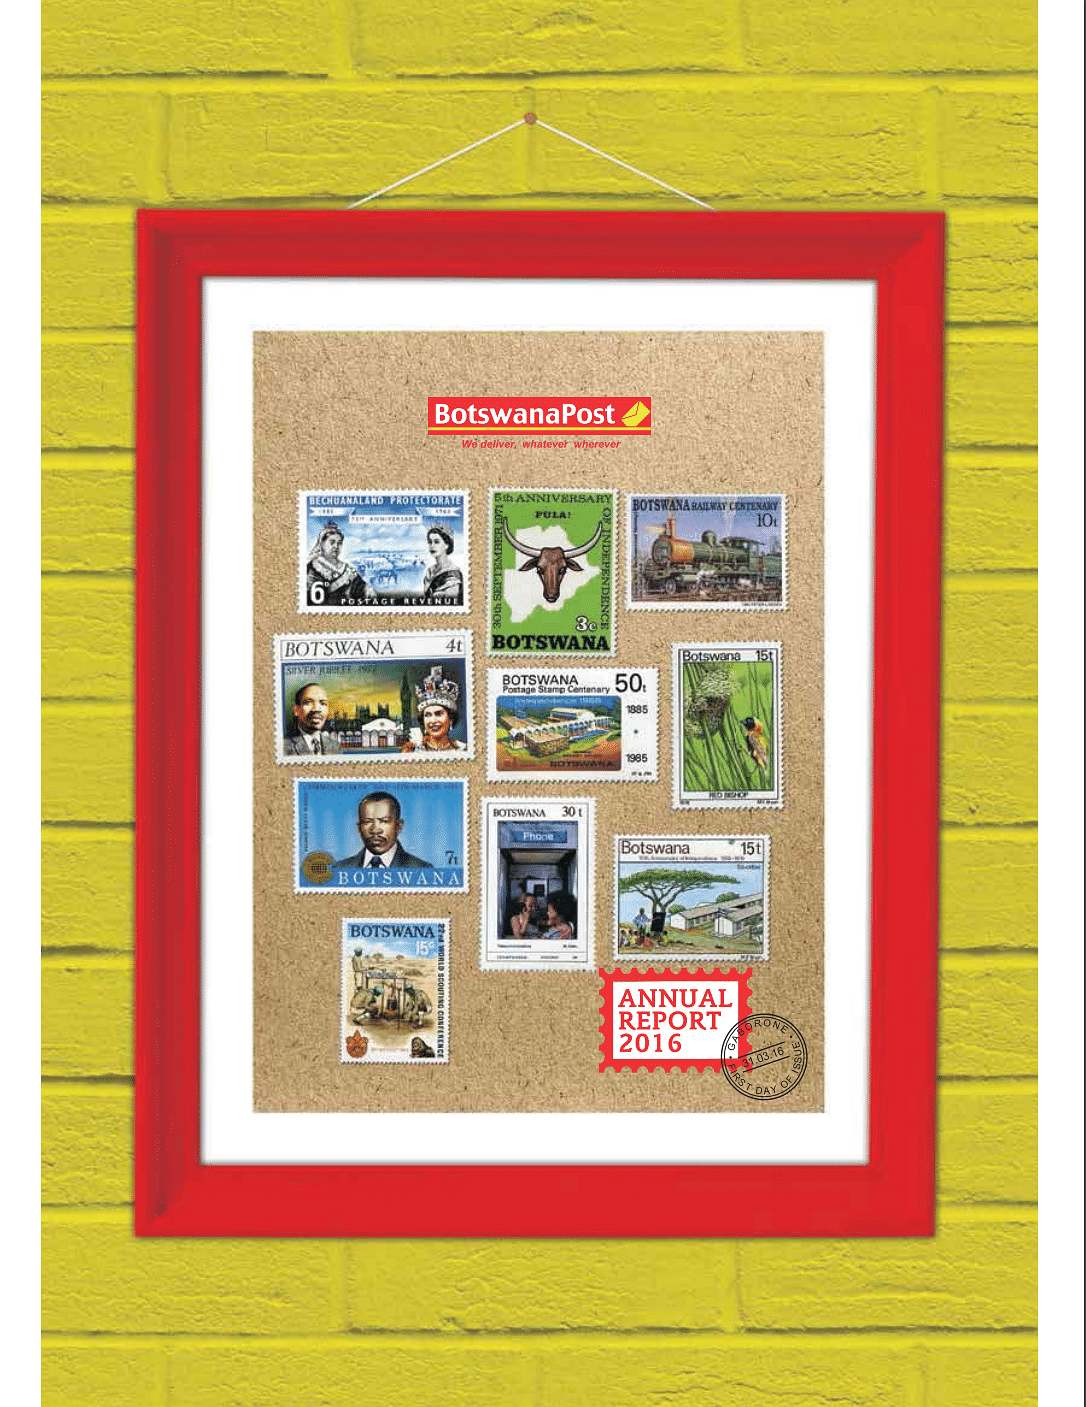 BotswanaPost Annual Report 2016 cover